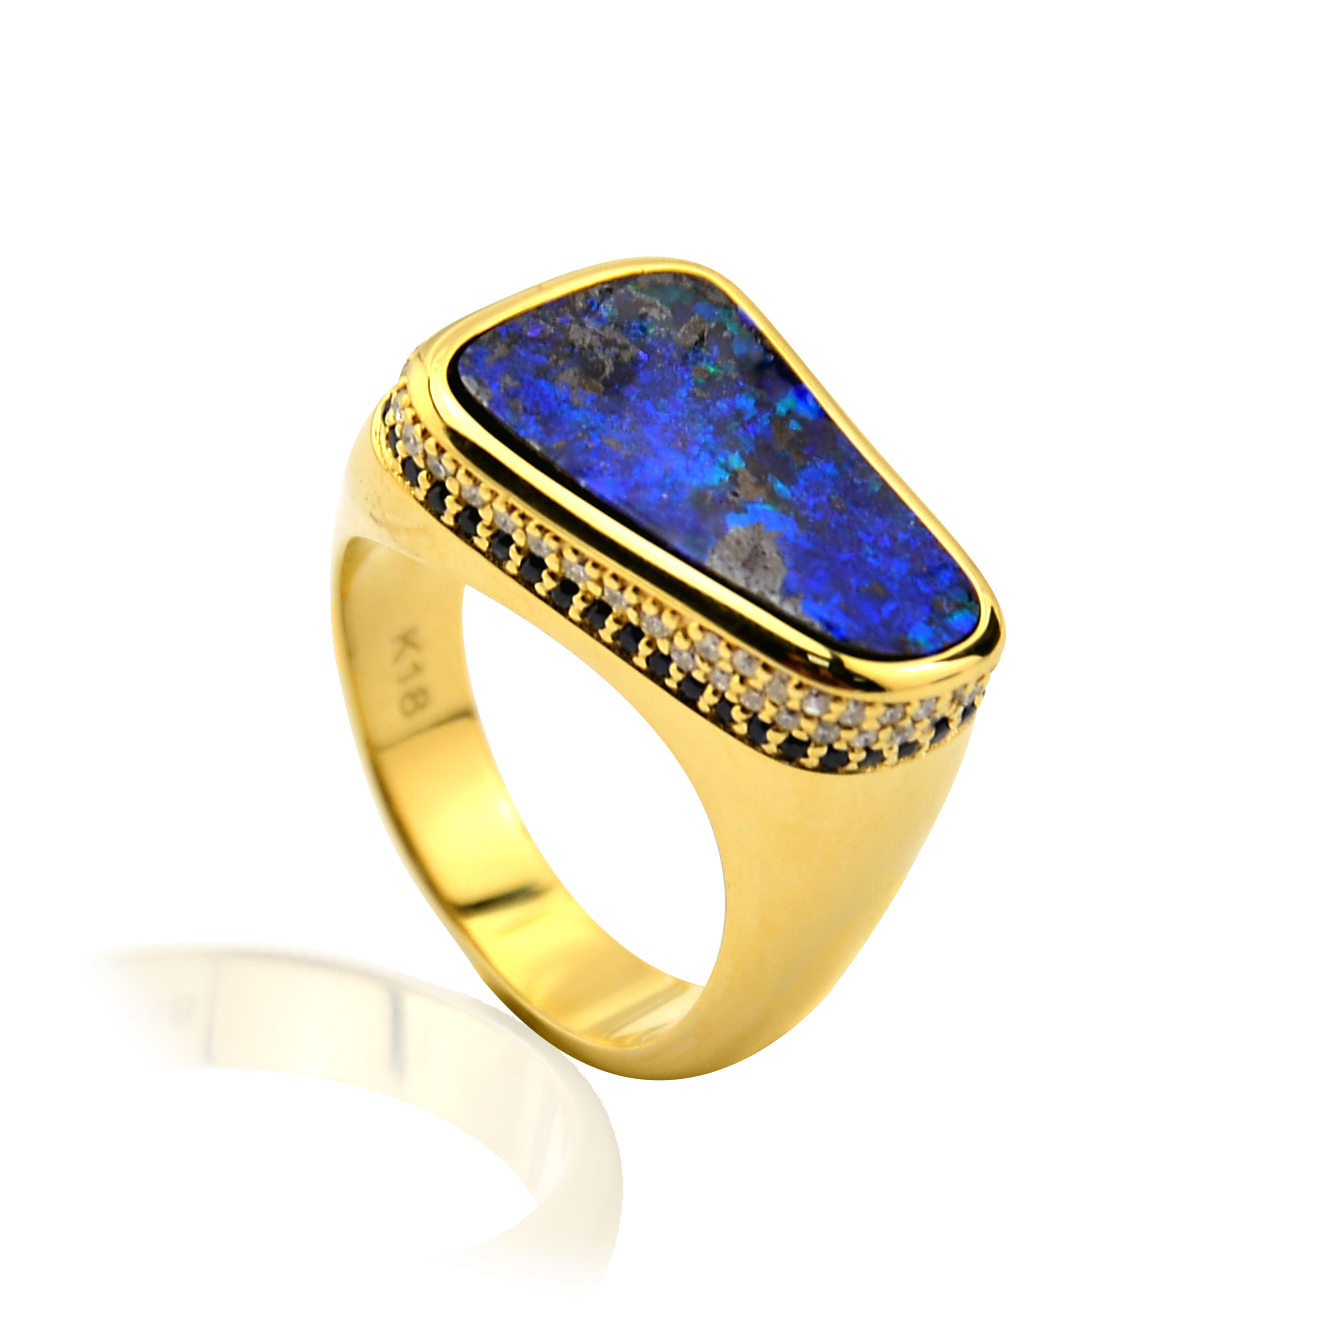 Wholesale Factory Price Customize Ring Quality 18K Real Gold Natural Blue Opal Rings